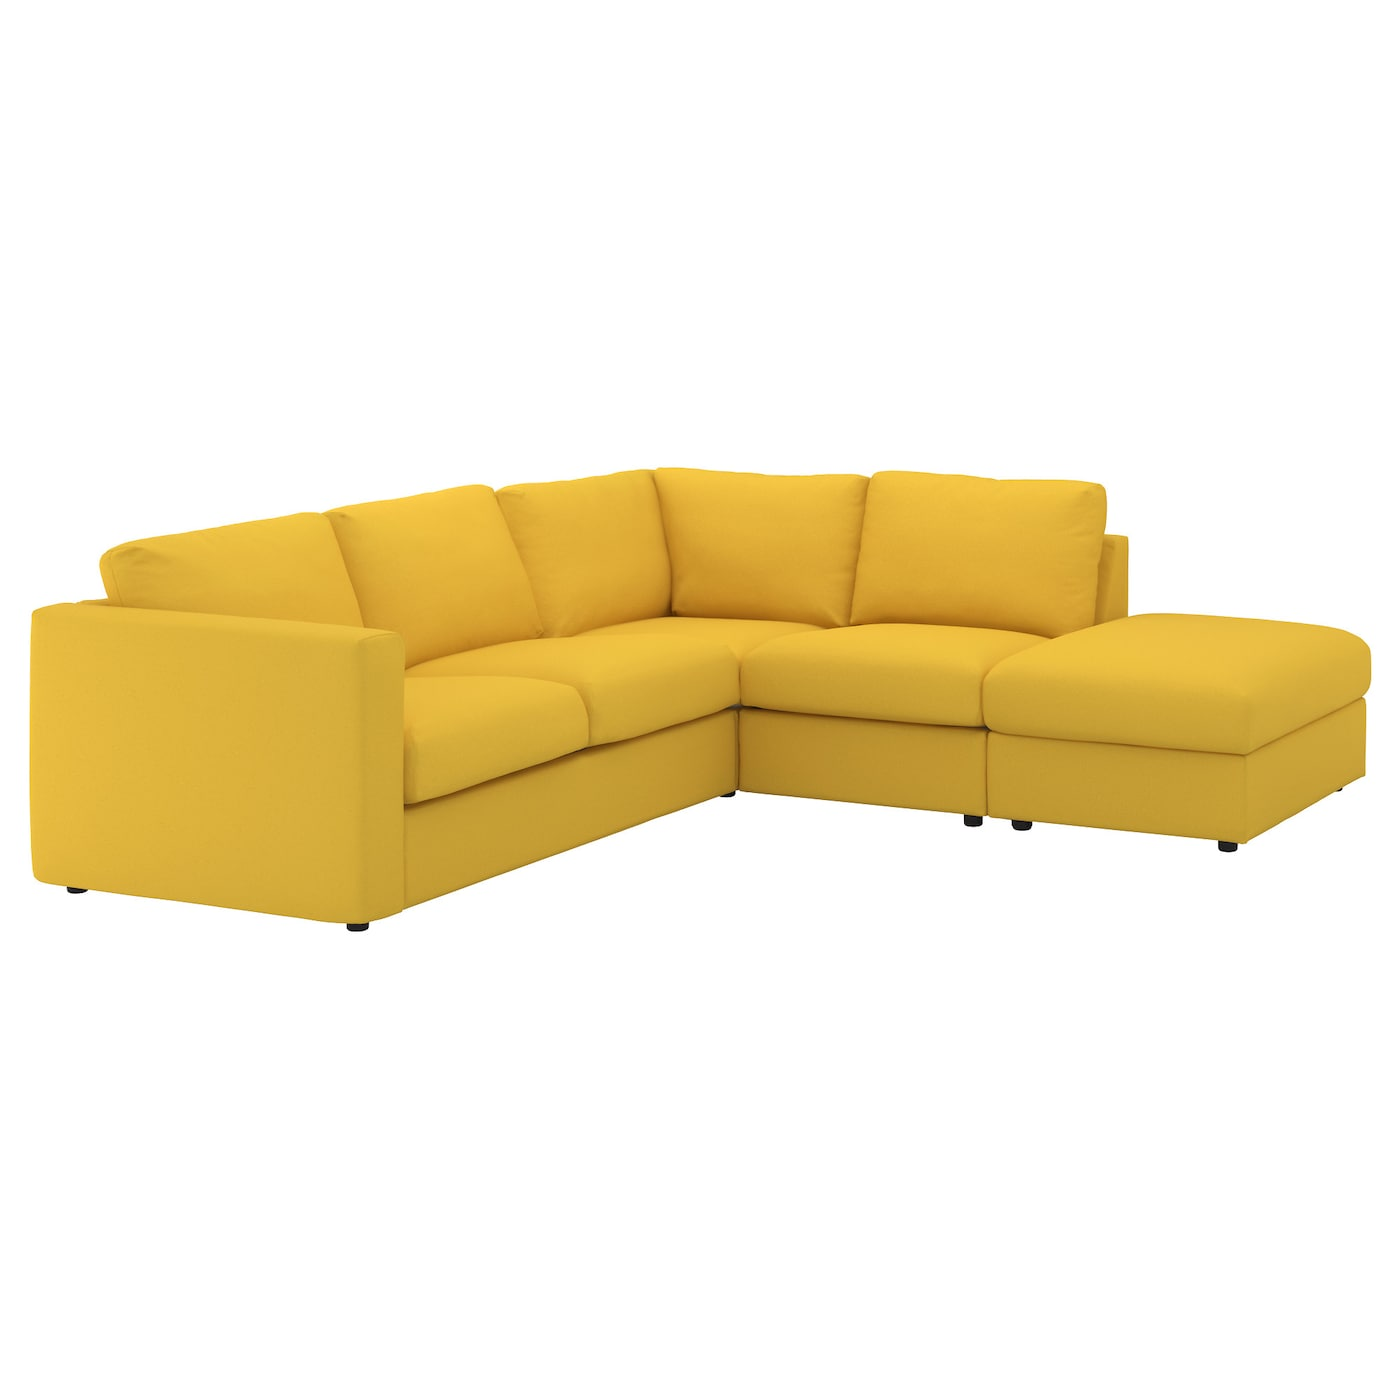 Vimle corner sofa 4 seat with open end gr sbo golden for Ikea corner sofa